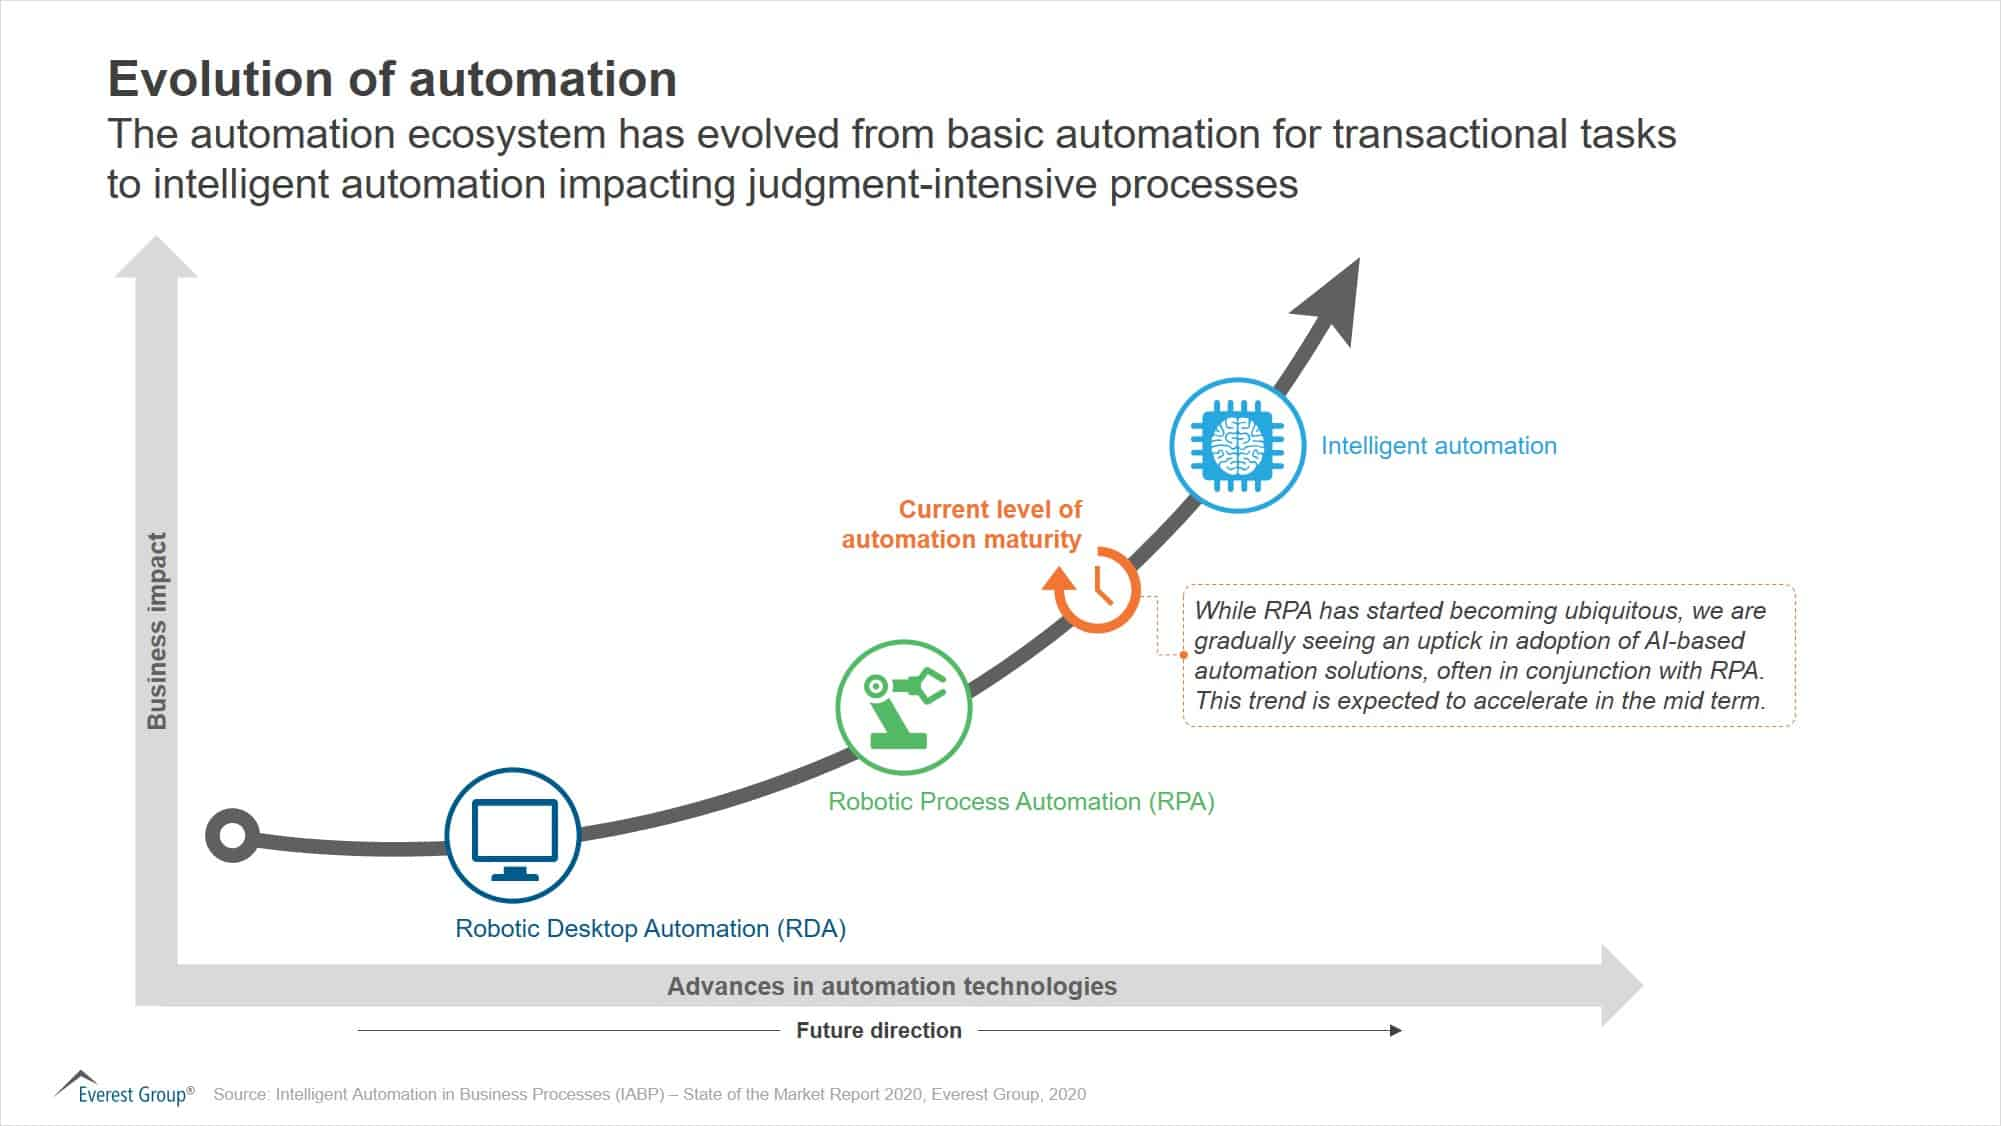 Intelligent Automation in Business Processes